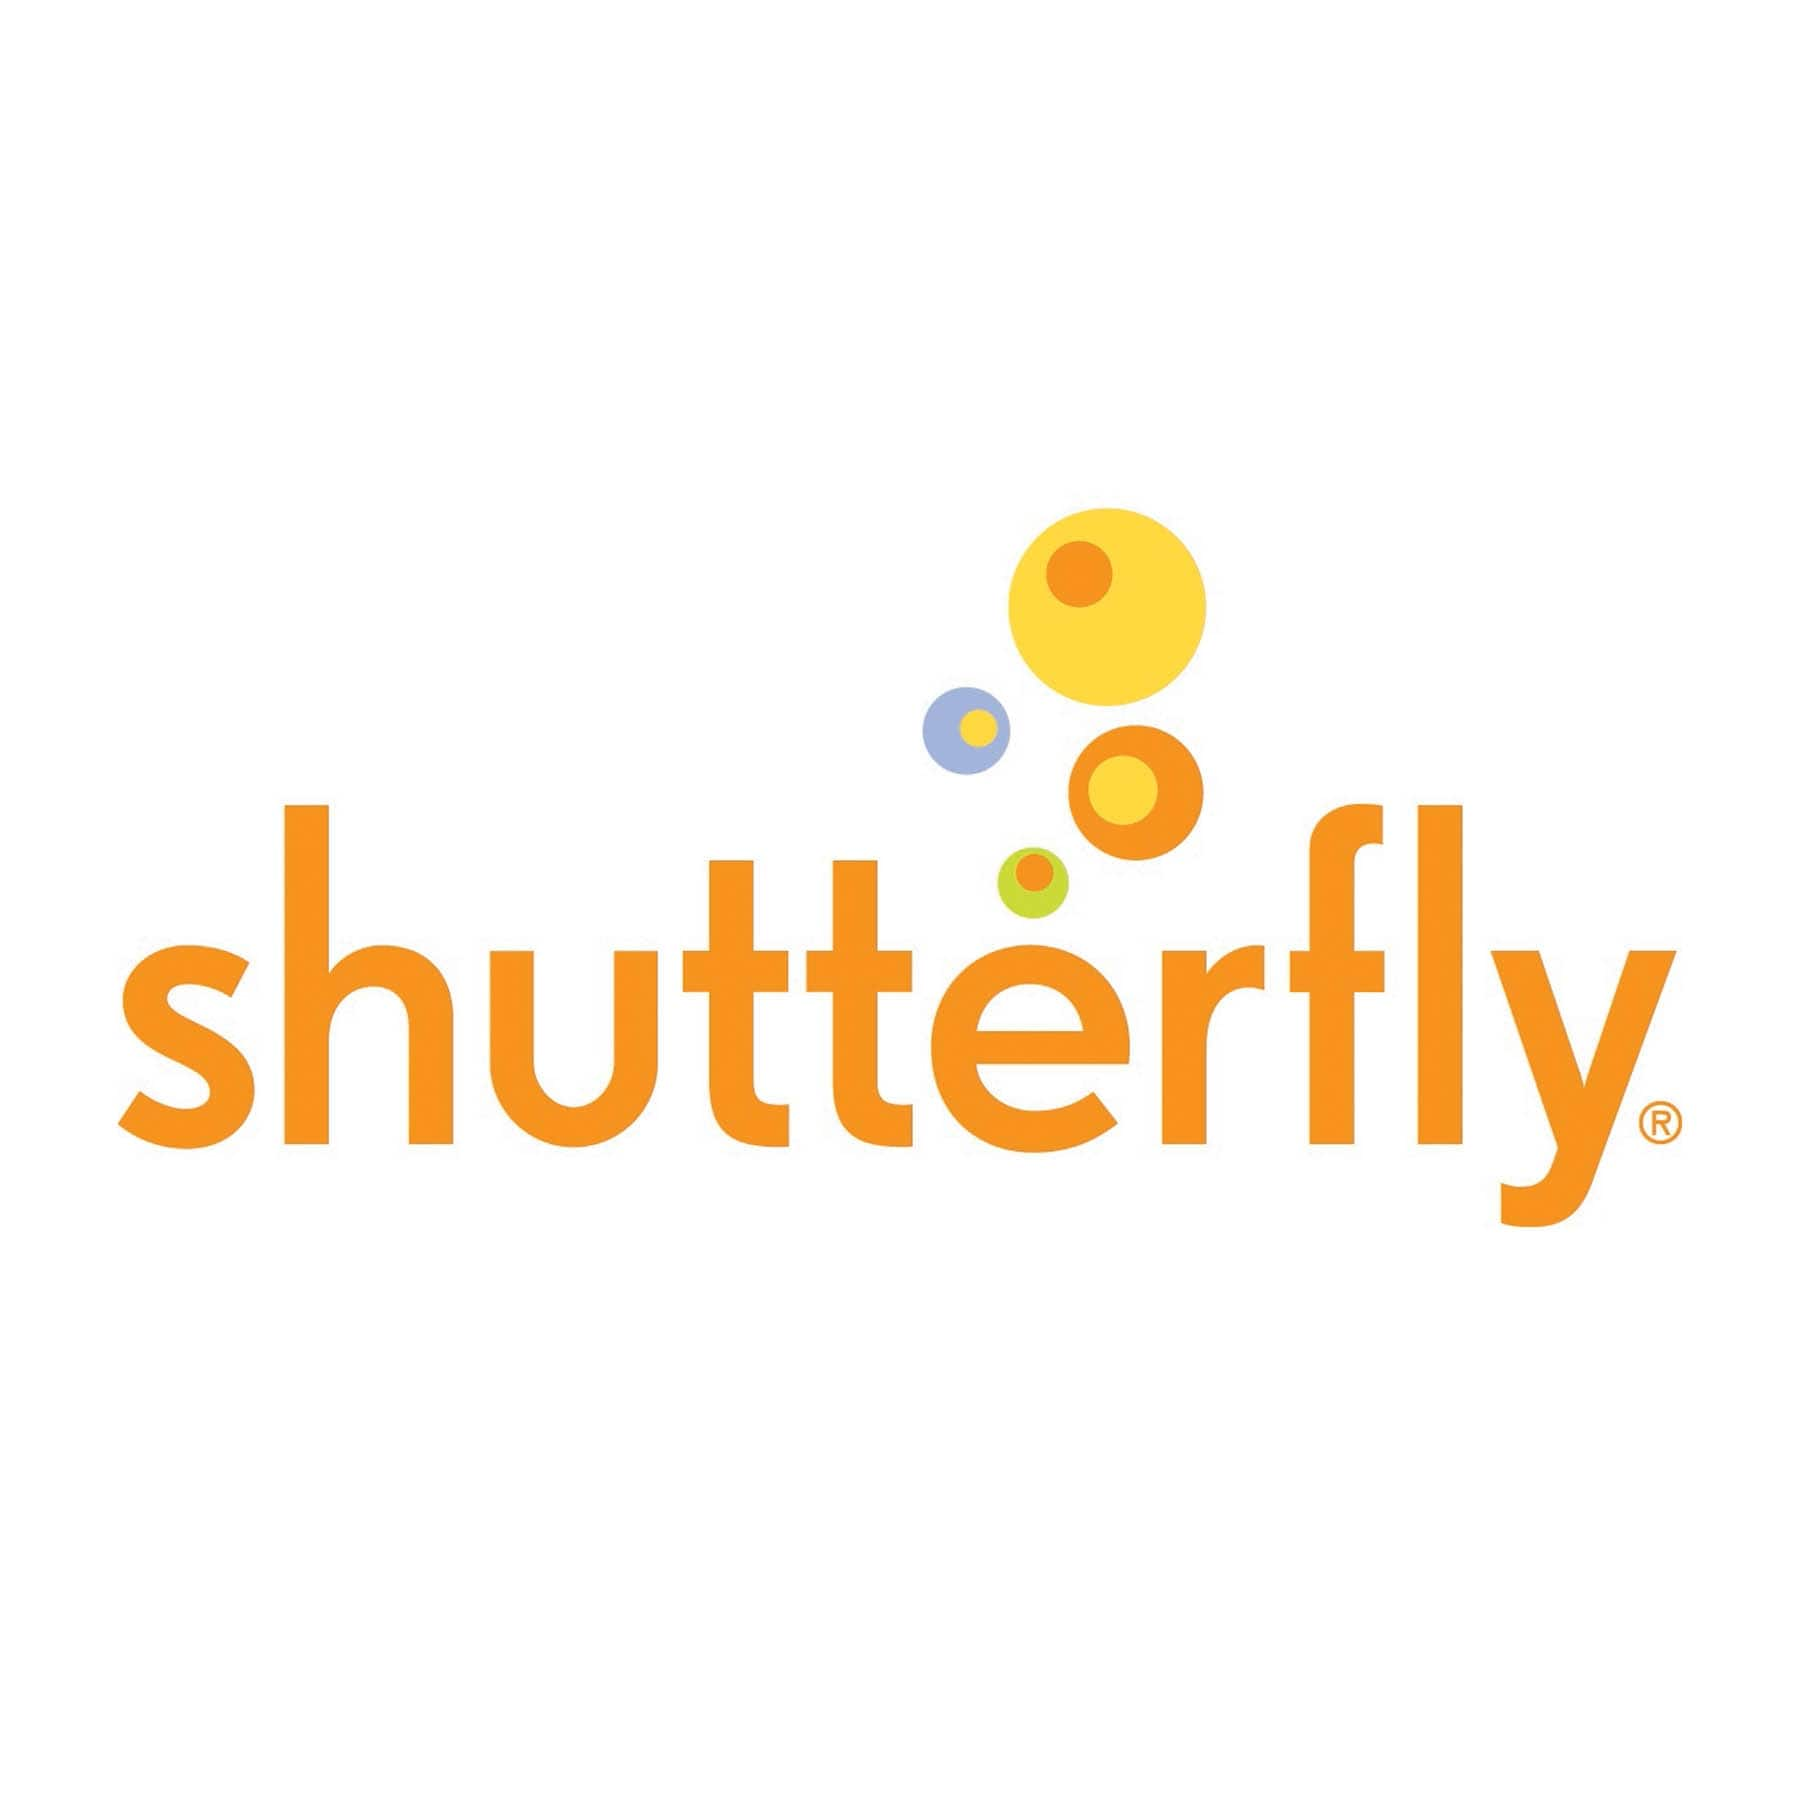 $20 off $20 at Shutterfly for free at MCR